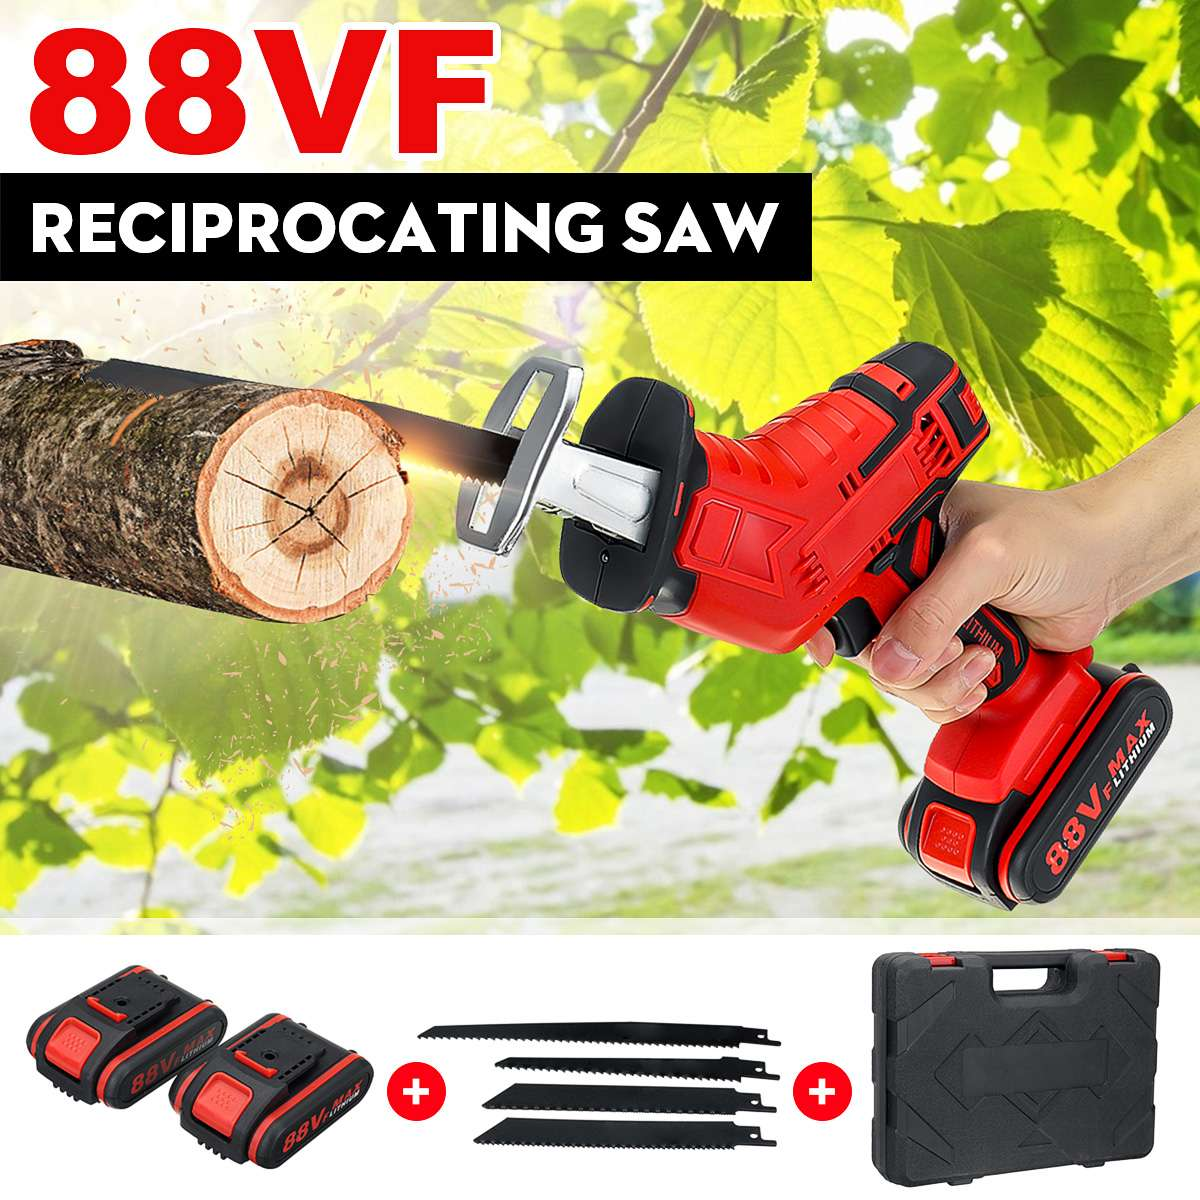 Doersupp 88V Cordless Reciprocating Saw Wood/Metal Cutting Saw Saber Saw Portable Electric Saw Rechargeable Lithium Battery Tool